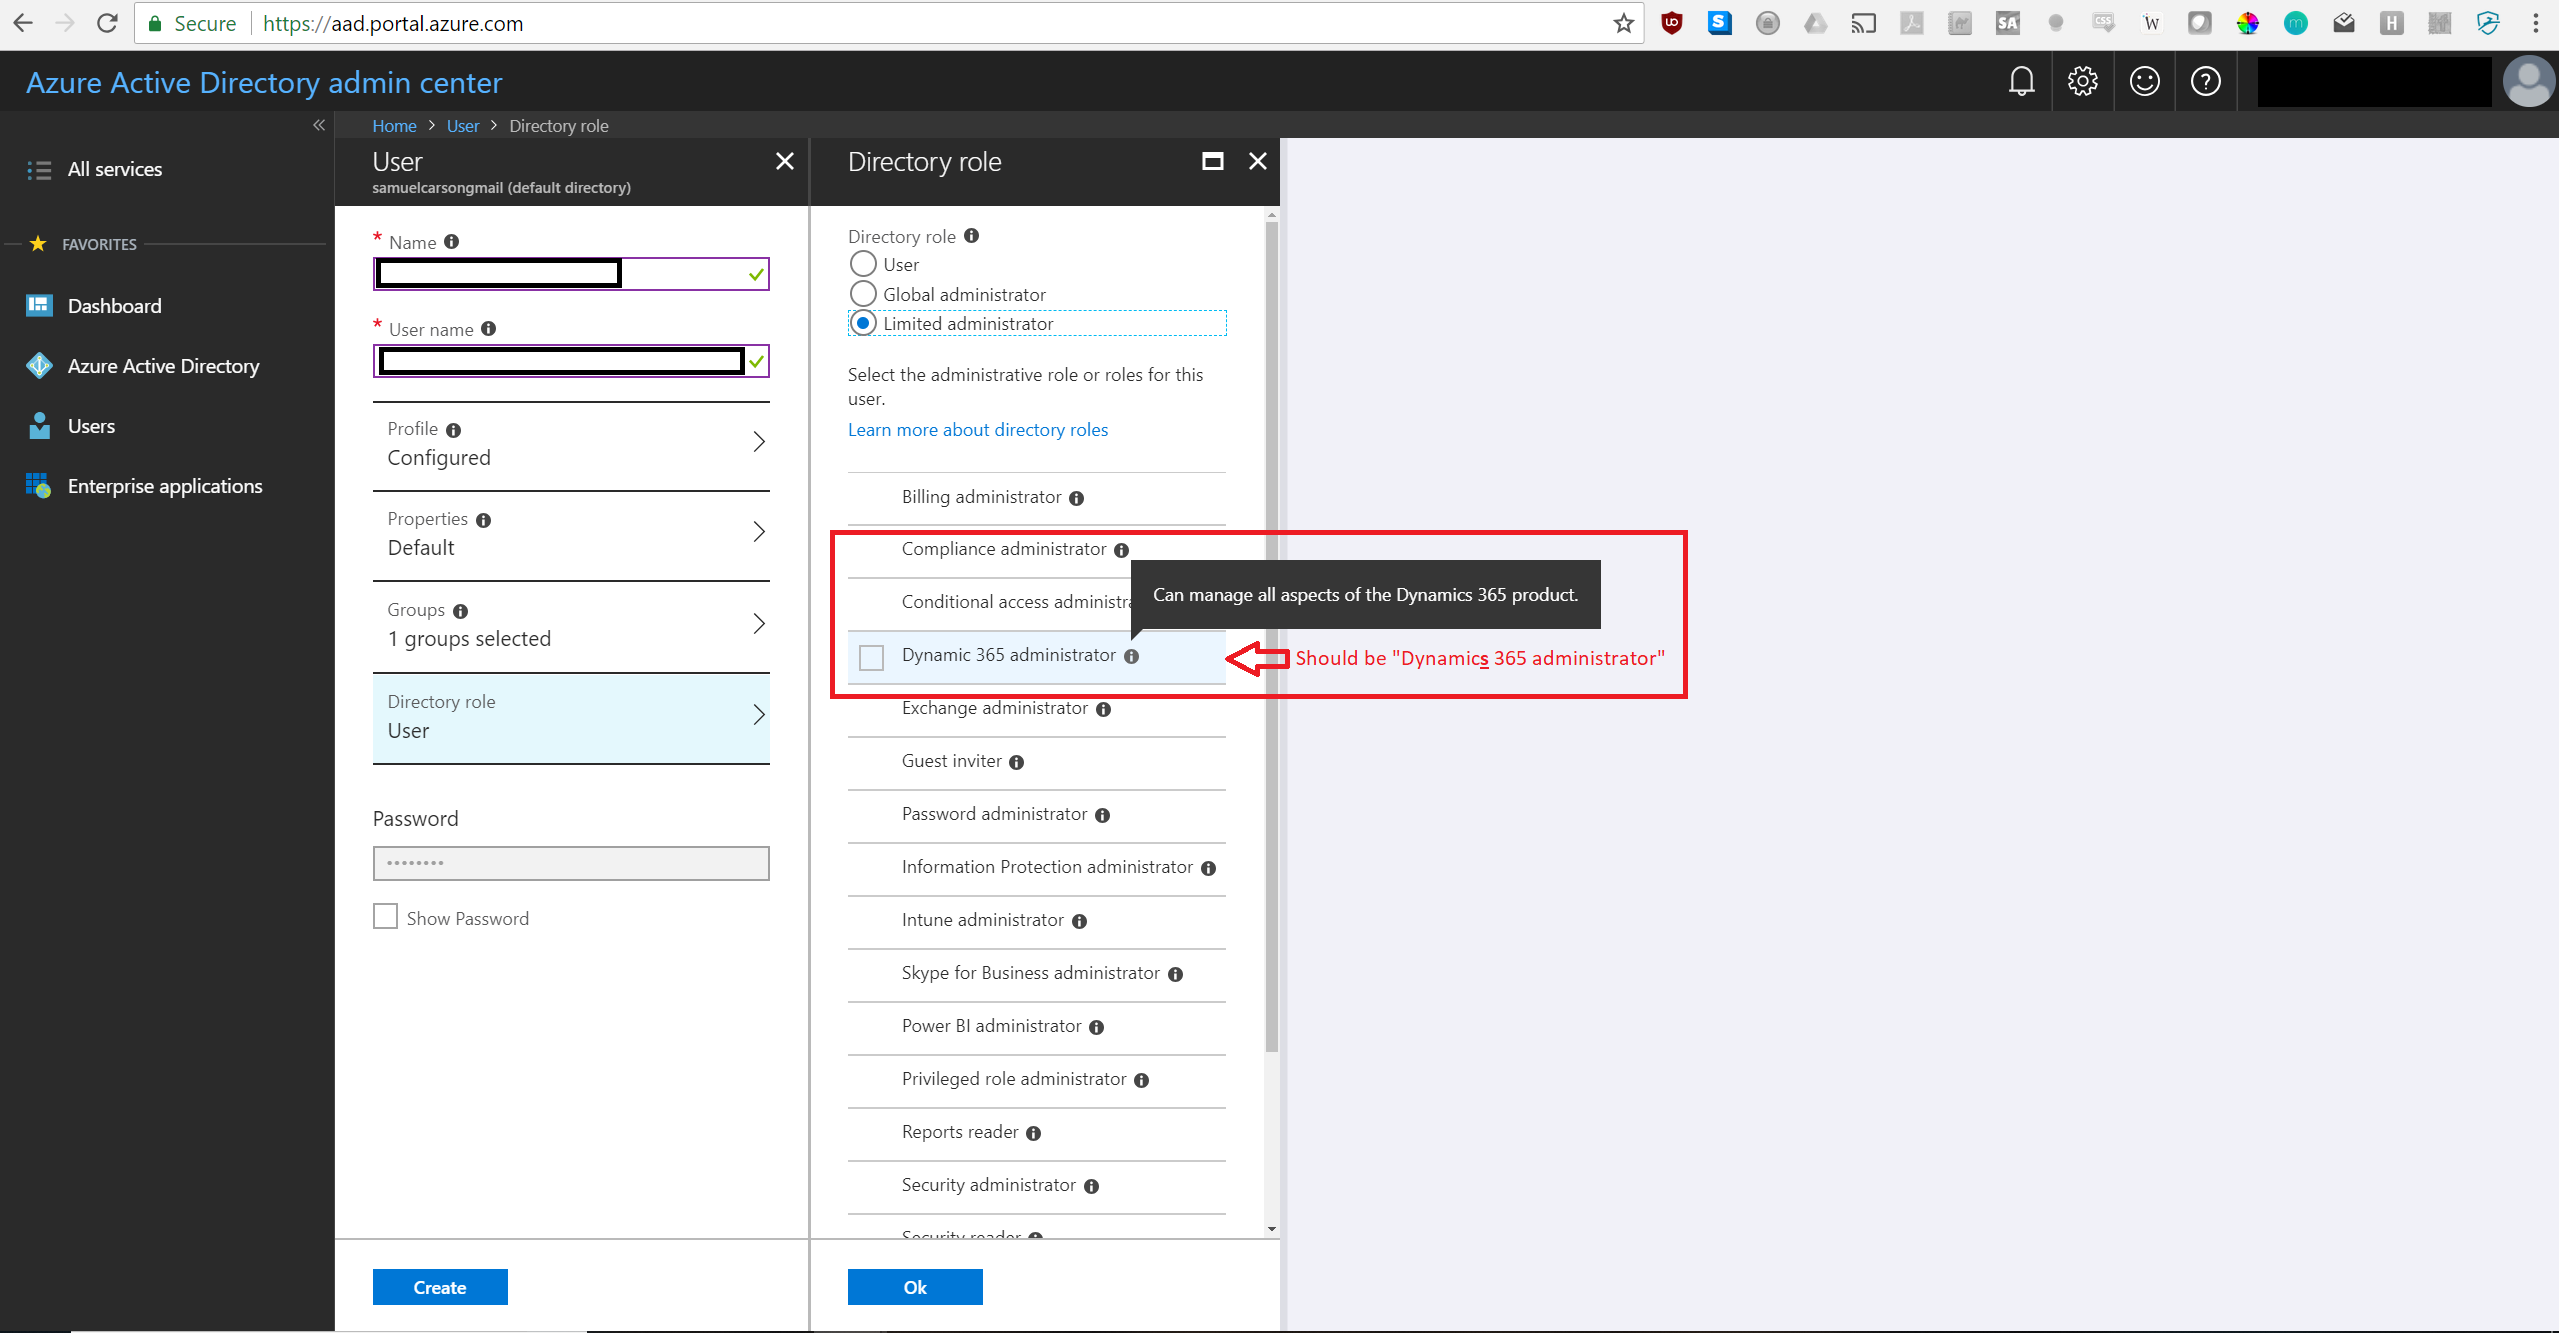 Dynamics 365 administrator role has typo in Azure AD, and